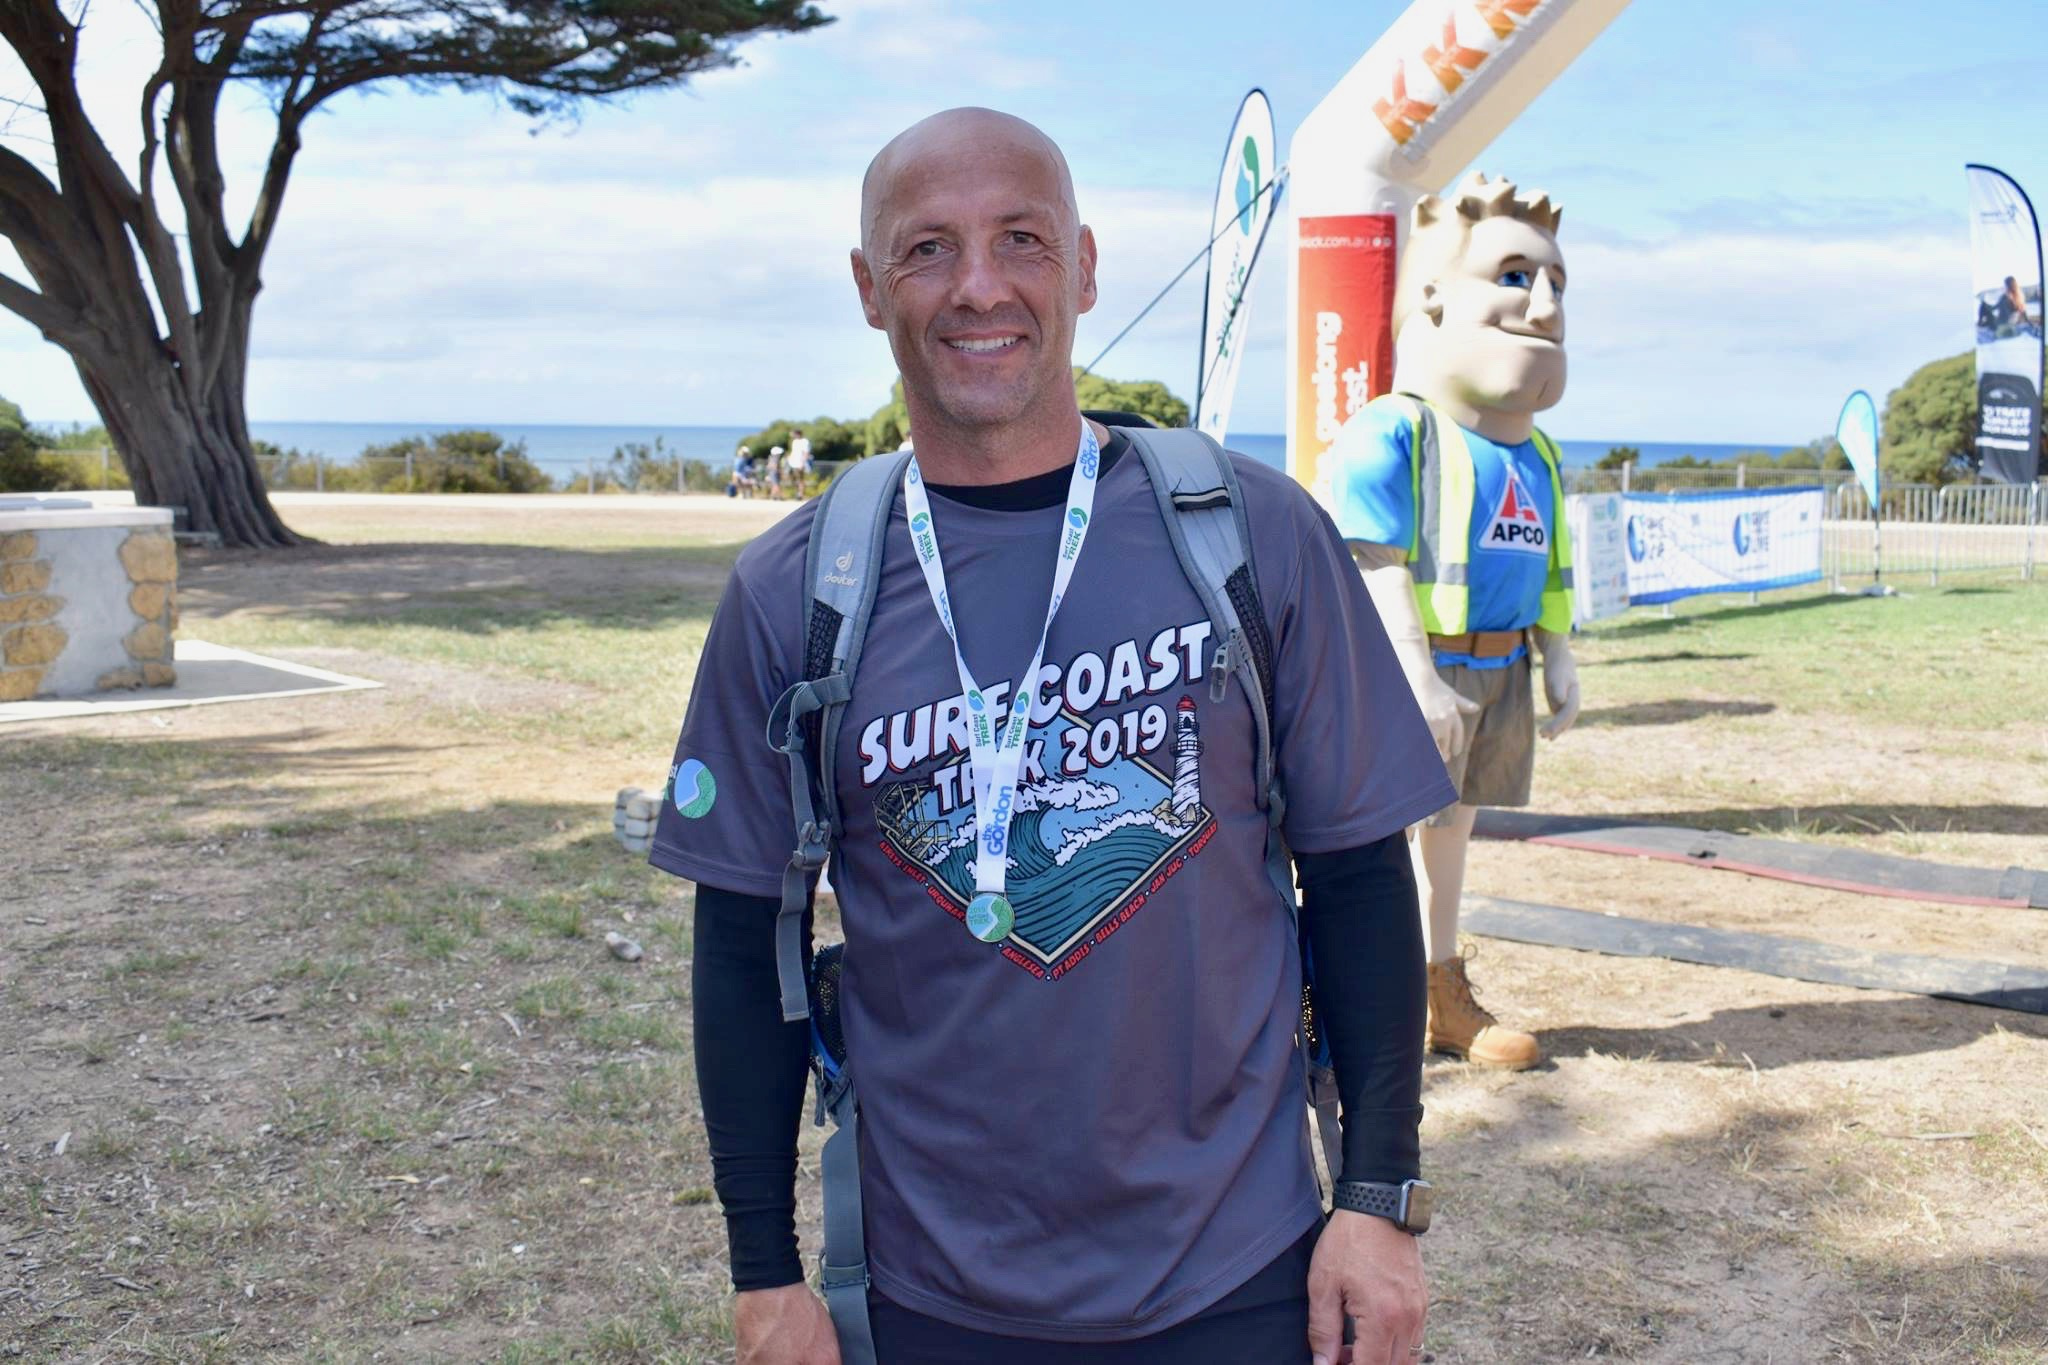 Mick O'Malley at the finish line of the Surf Coast Trek: April 6, 2019.